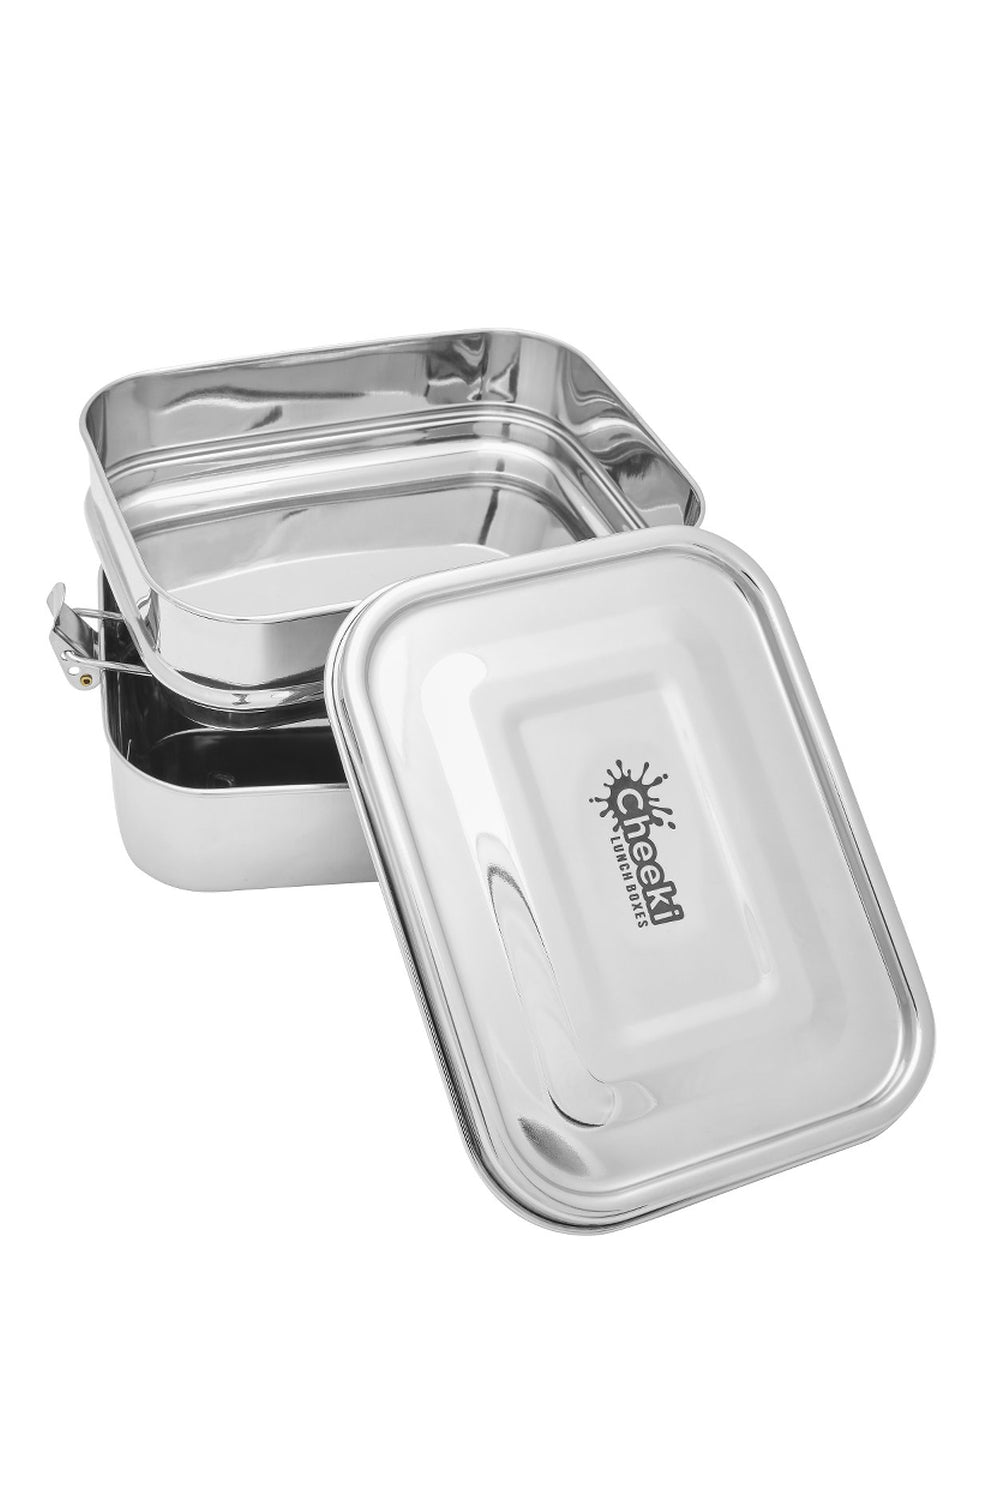 Cheeki | 1 litre double stack Bento lunch box | Plastic Free Living | Environmentally Friendly Homewares